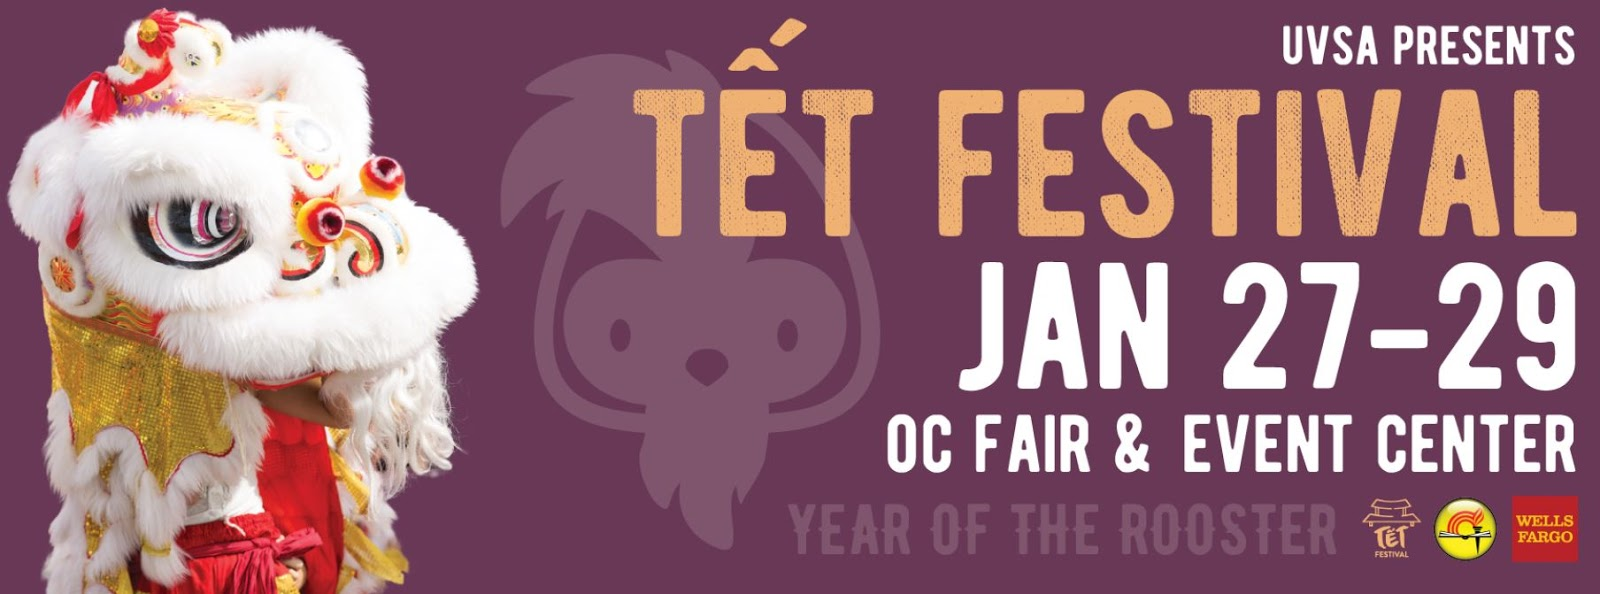 Jan 27 - 29 | Celebrate The Year Of The Rooster At The UVSA Tet Festival In Costa Mesa! (Giveaway)